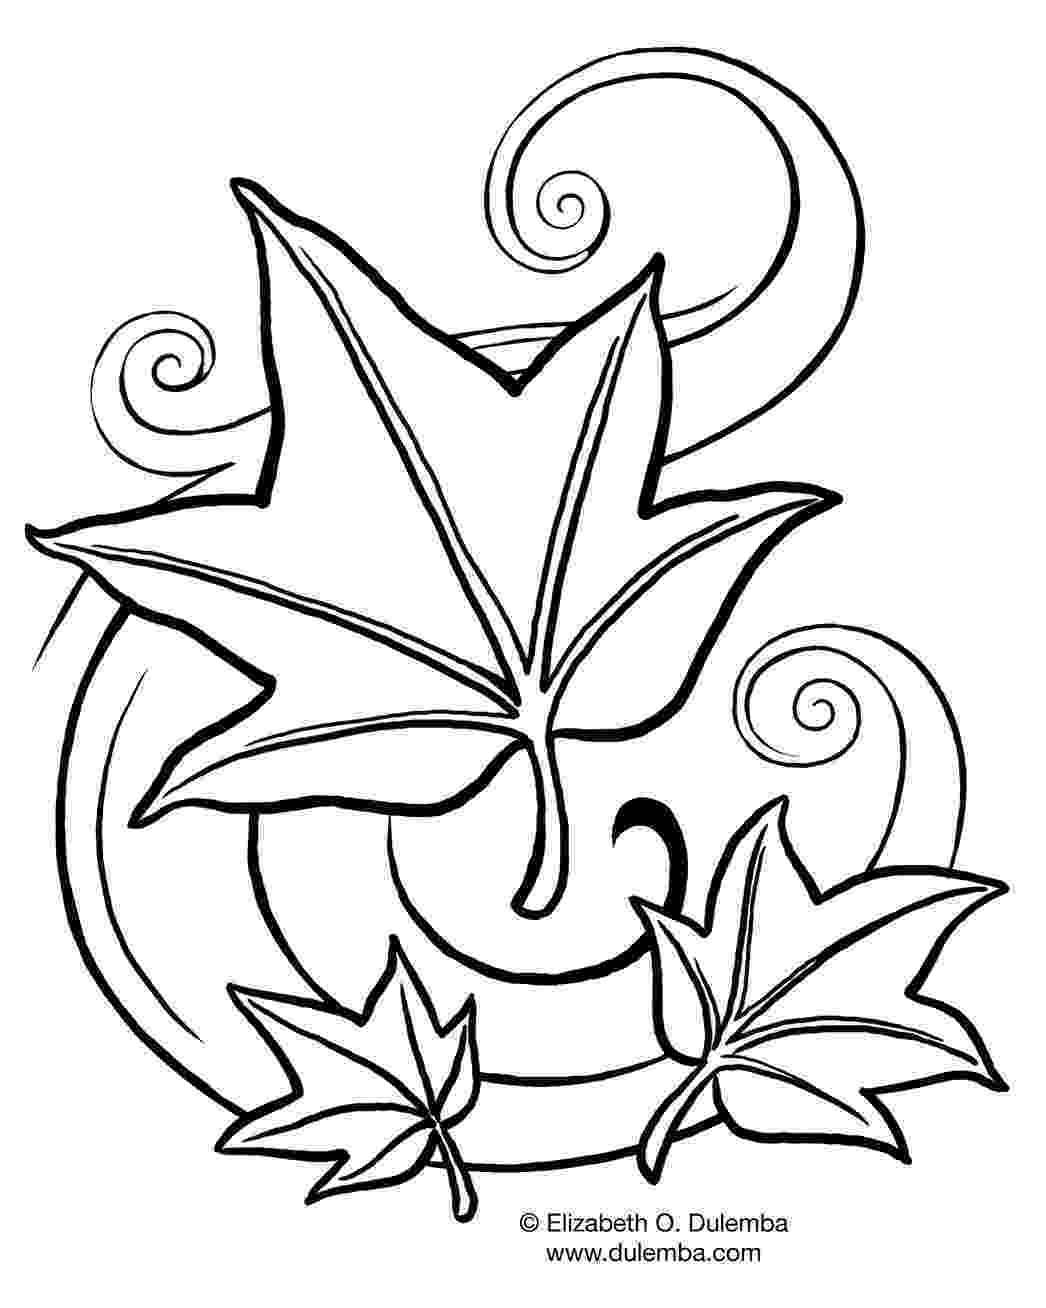 september coloring pages months coloring pages coloring pages to download and print coloring pages september